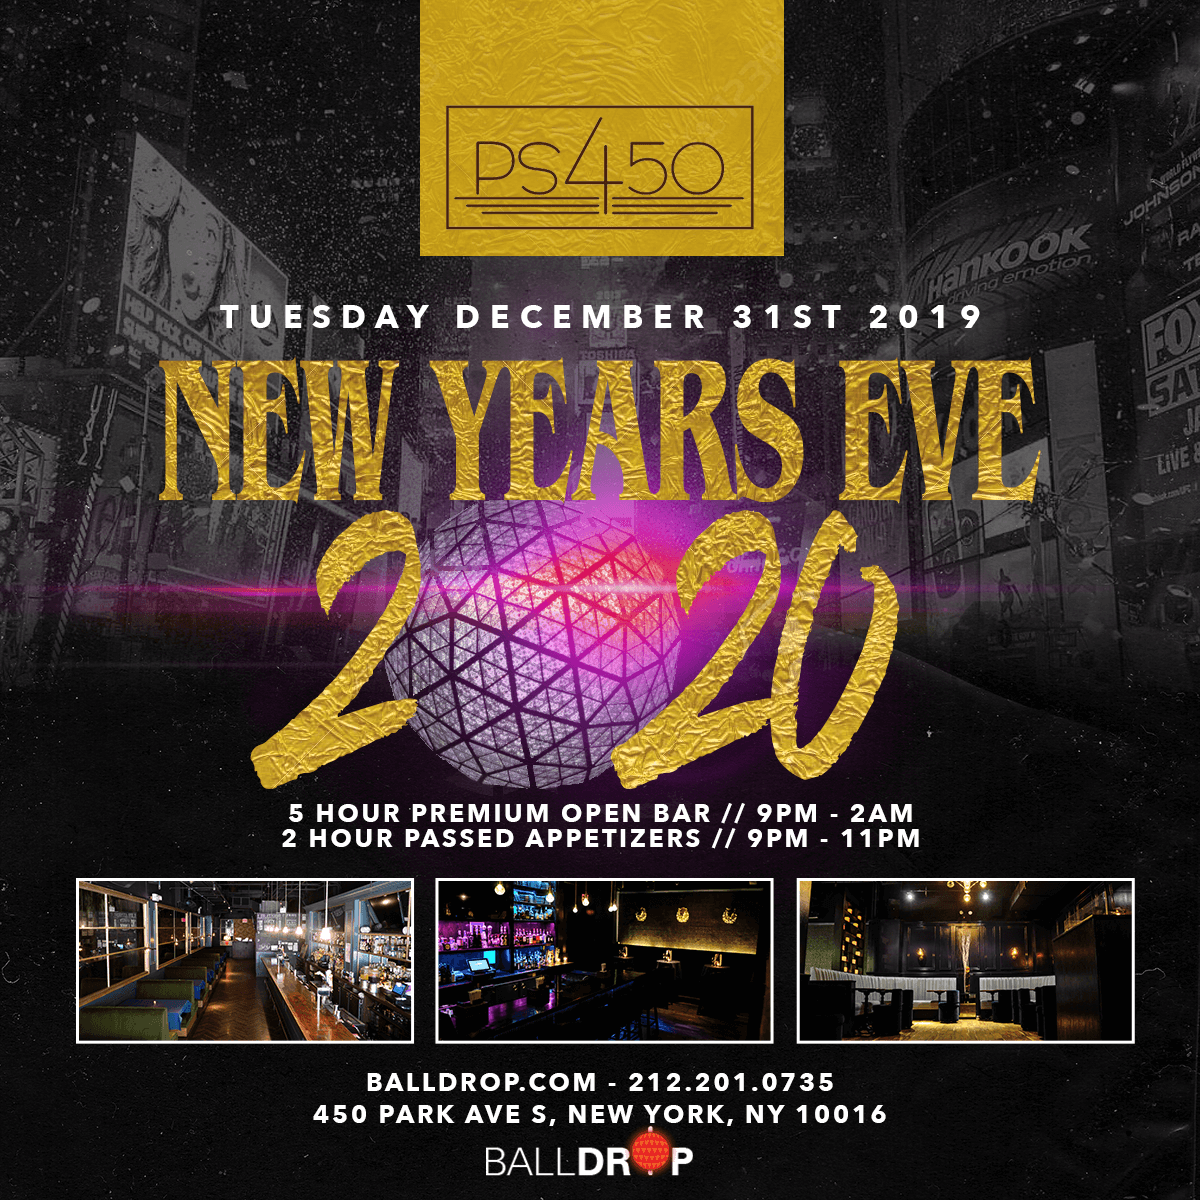 PS 450 NYC New Years Eve 2020